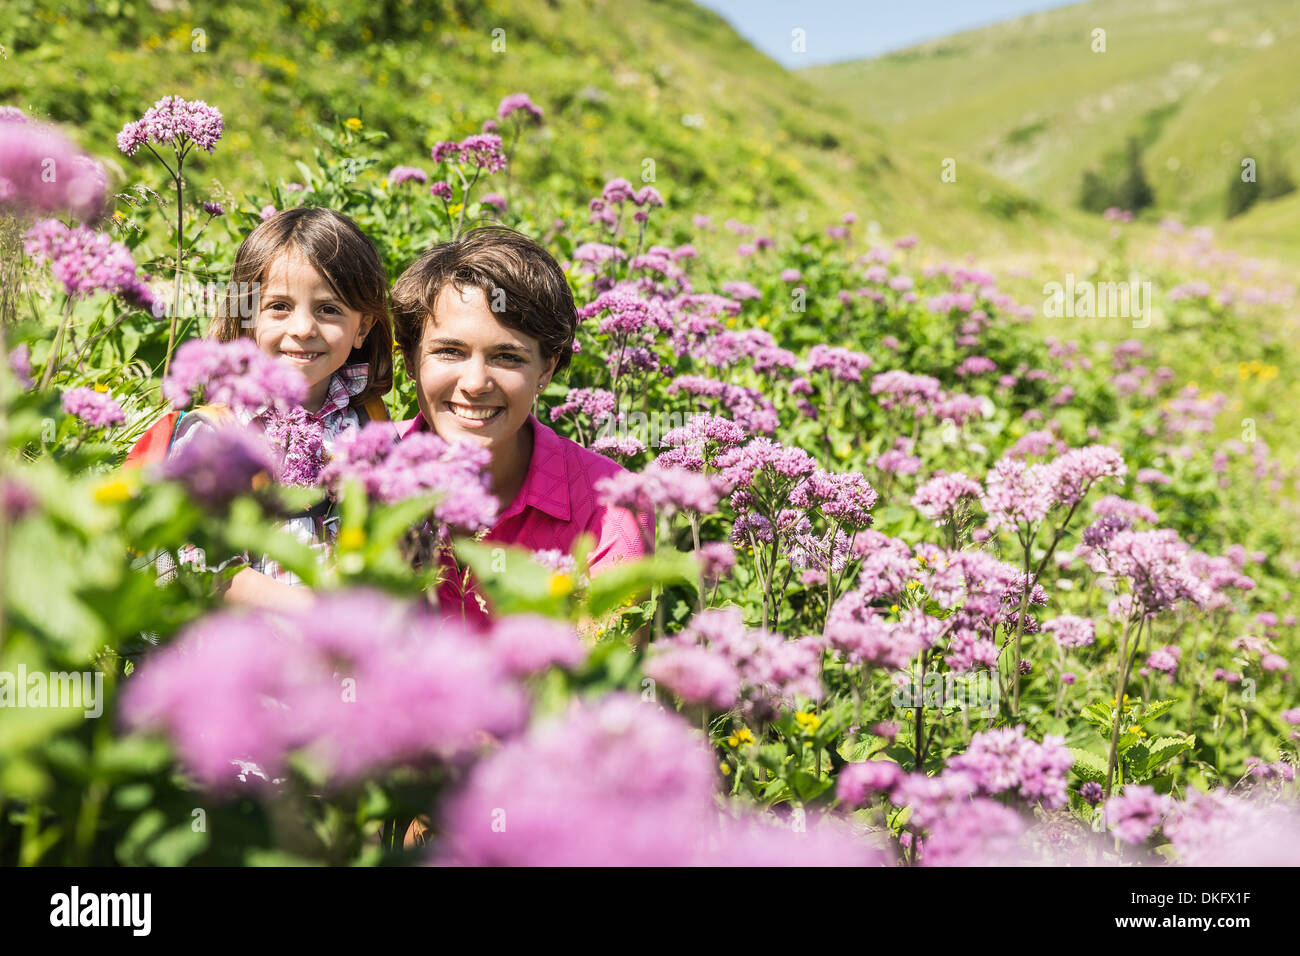 Mother and daughter hiding among wild flowers, Tyrol, Austria - Stock Image